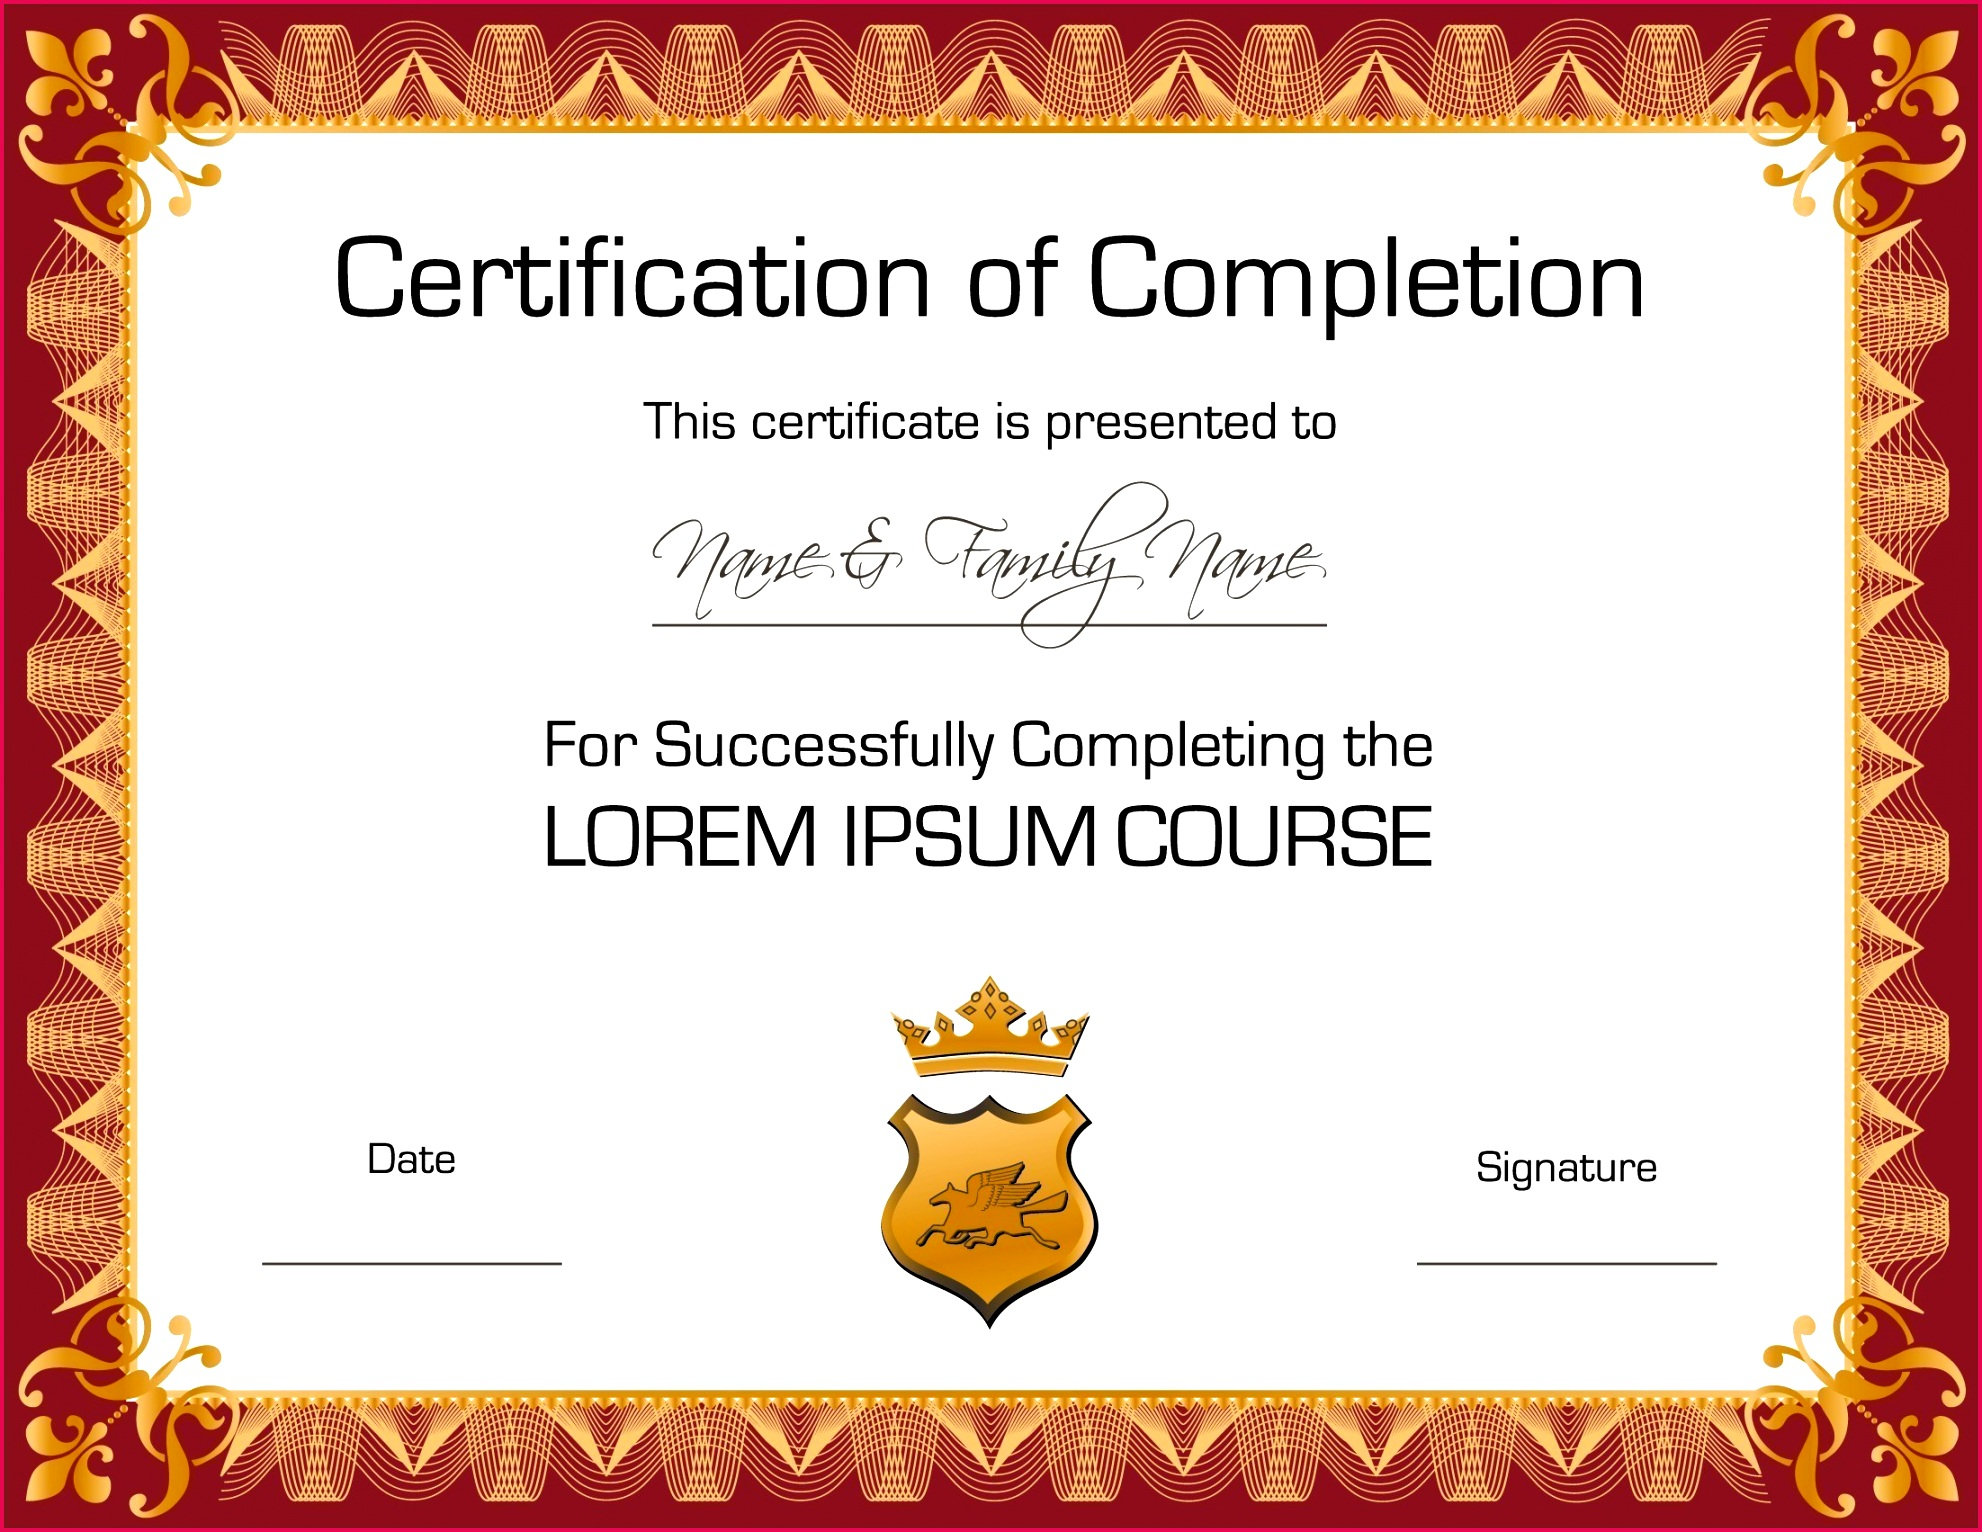 022 template ideas free printable certificates and awards luxury certificate vector copy award of